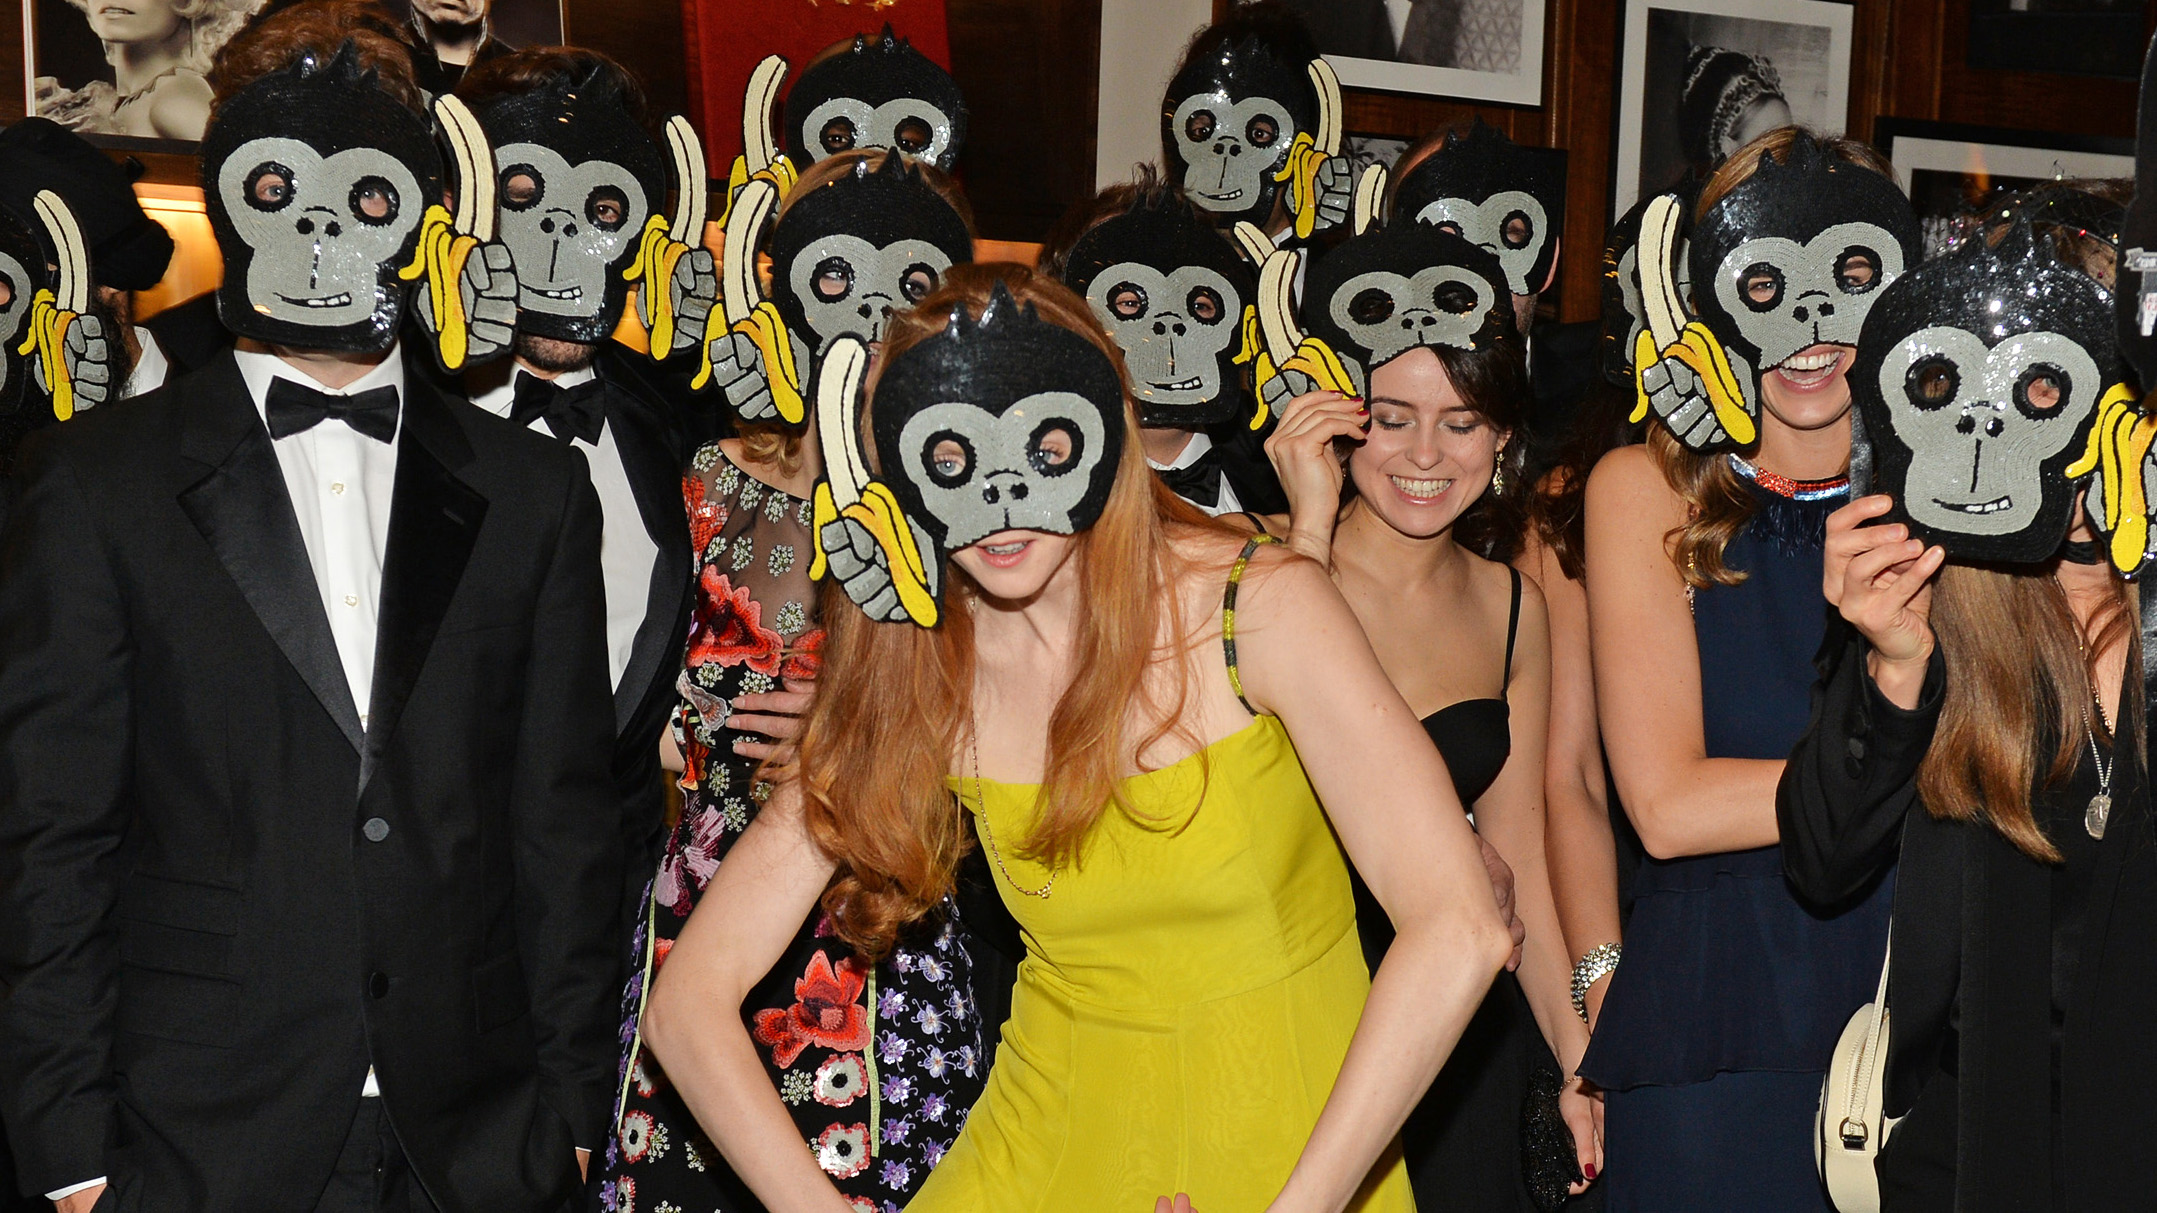 <p>The animals have escaped from the zoo and taken over the runways with four-legged, two-legged and some eight-legged friends about to crawl into your closet.</p>                                                                 <p>At the Animal Ball in London this week model Lily Cole settled for a gorilla mask with her friends but it's time to make a pet of your purses, pullovers and dresses.</p>                                                                 <p>Ease your way in with animal print or go barking mad with a dog bag. Enter our animal shelter now.</p>